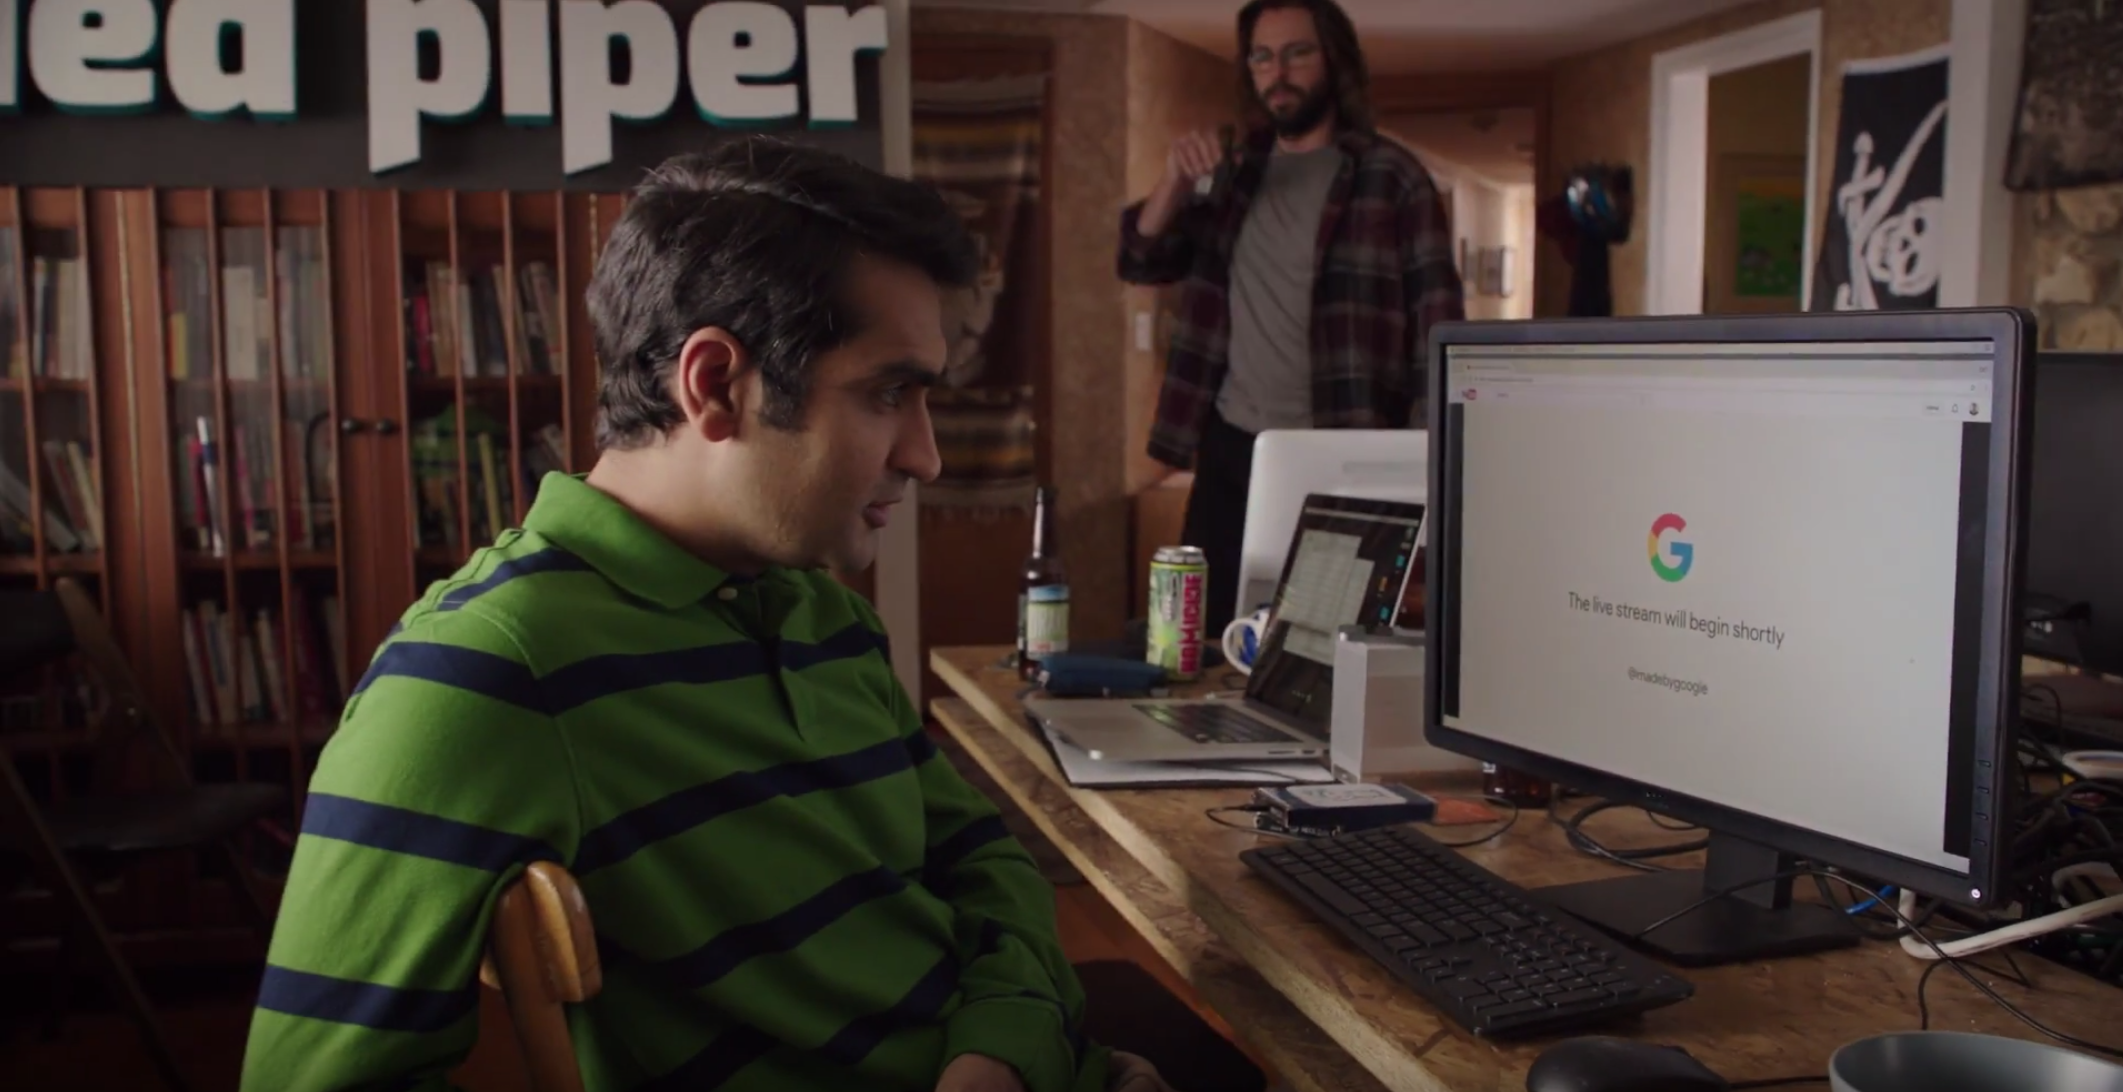 ICYMI: The Google event's hilarious intro featured Dinesh and Gilfoyle from Silicon Valley